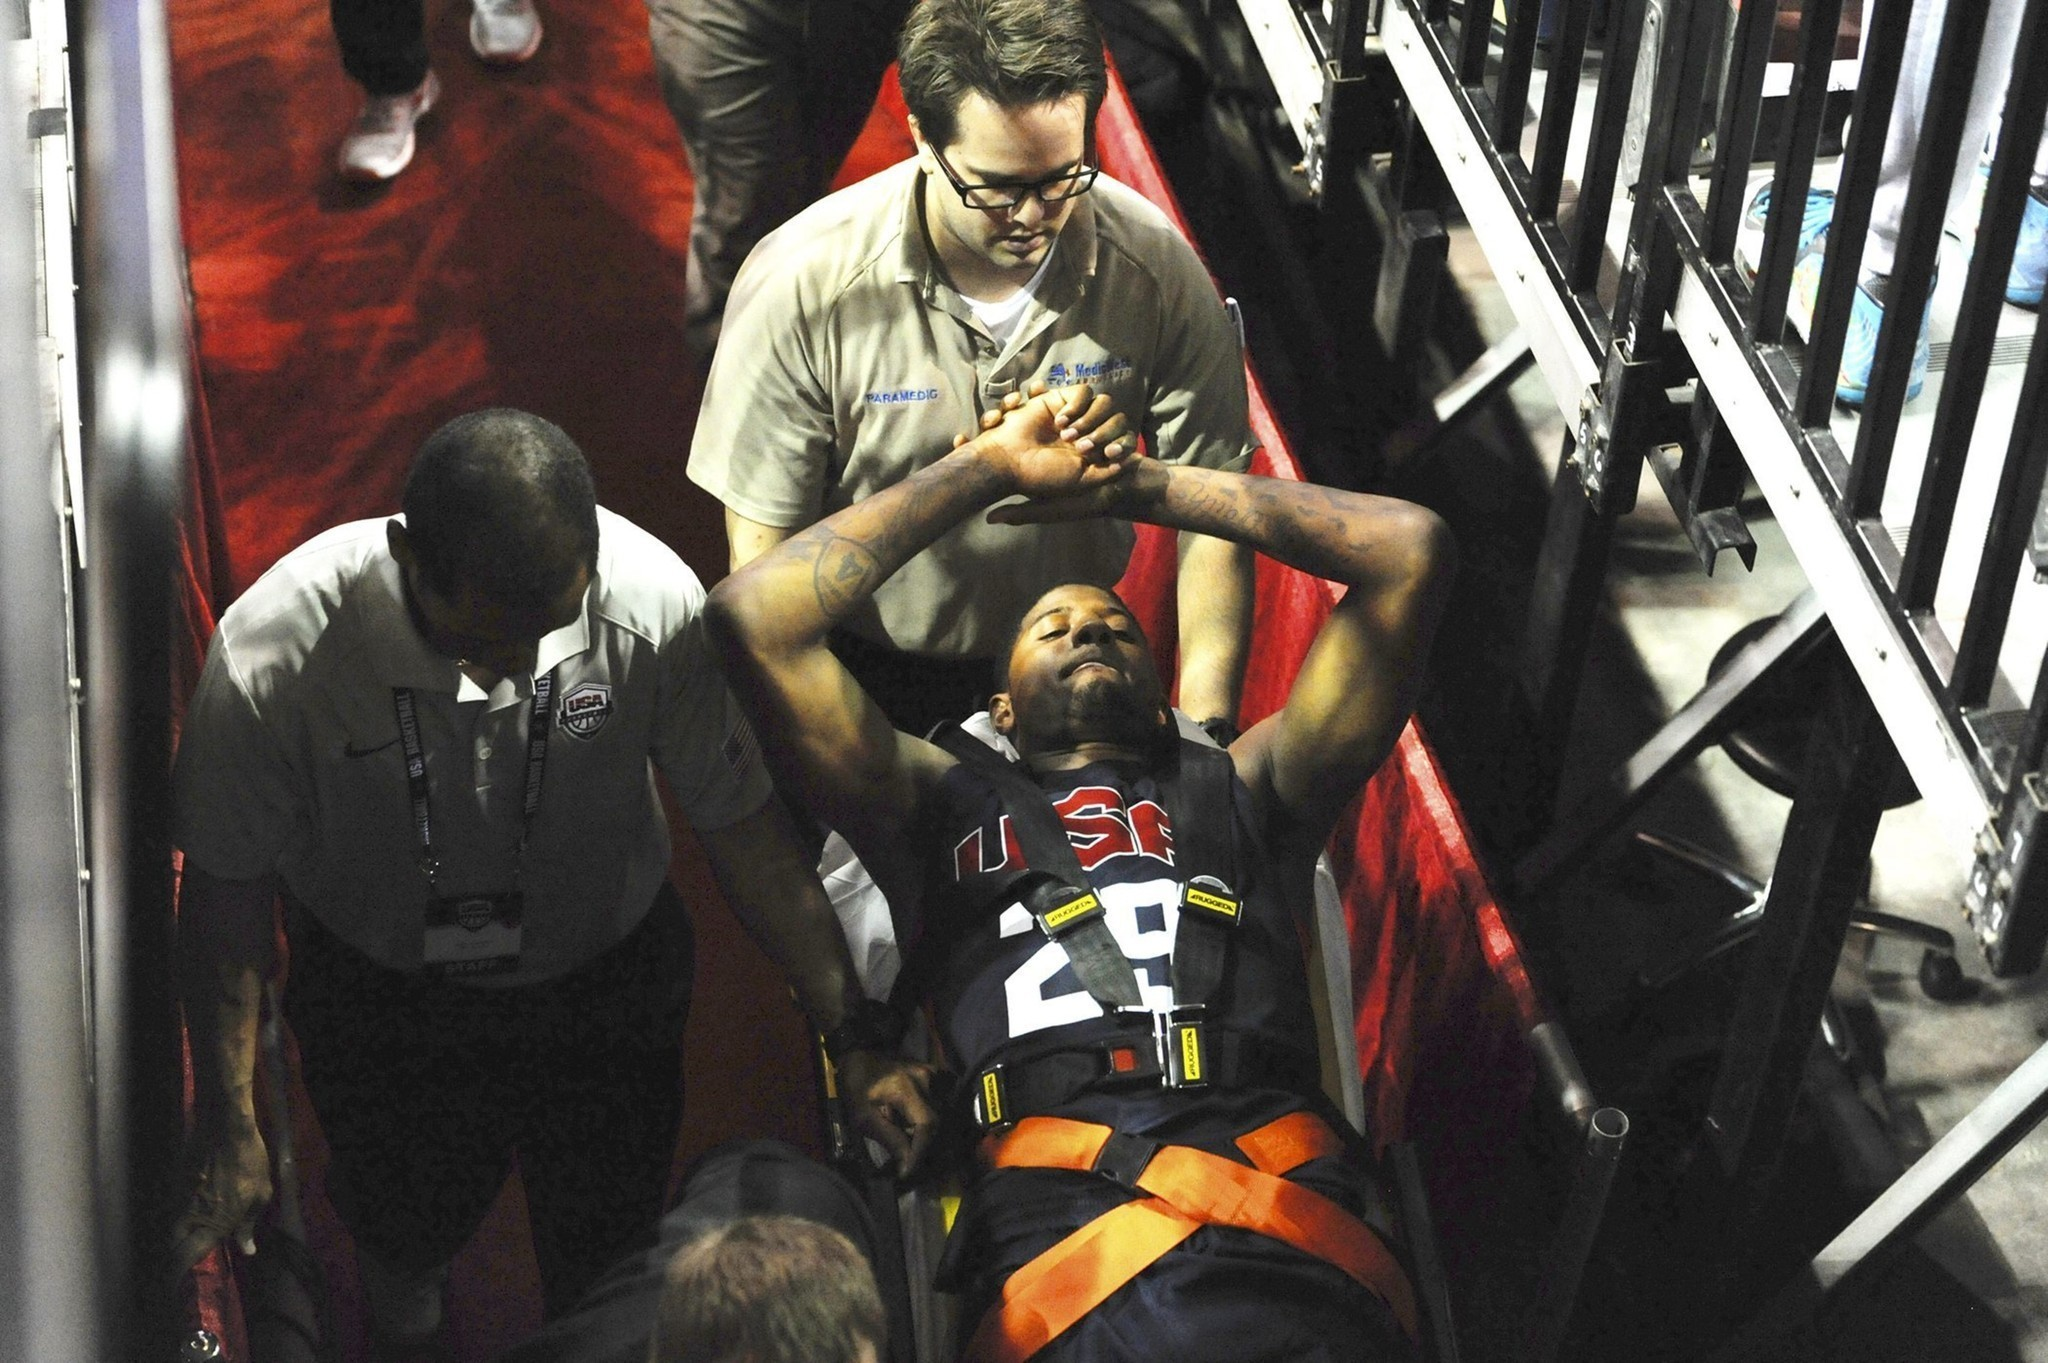 Nike Turns Paul George Injury Into Comeback Ad